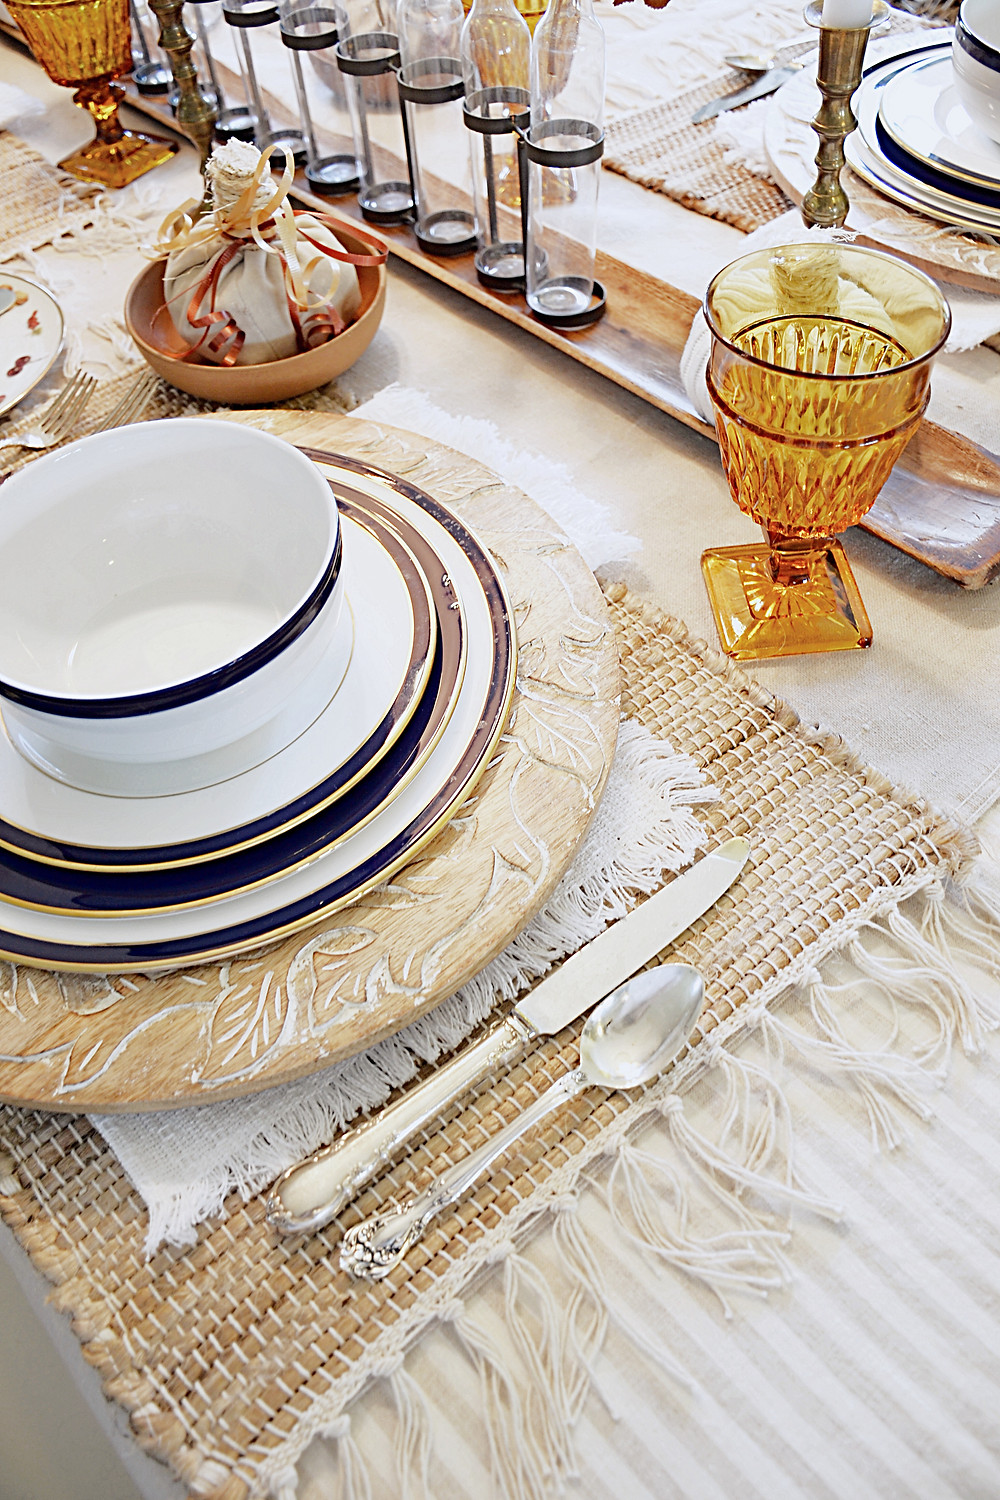 table scape with amber glassware and lenox china.